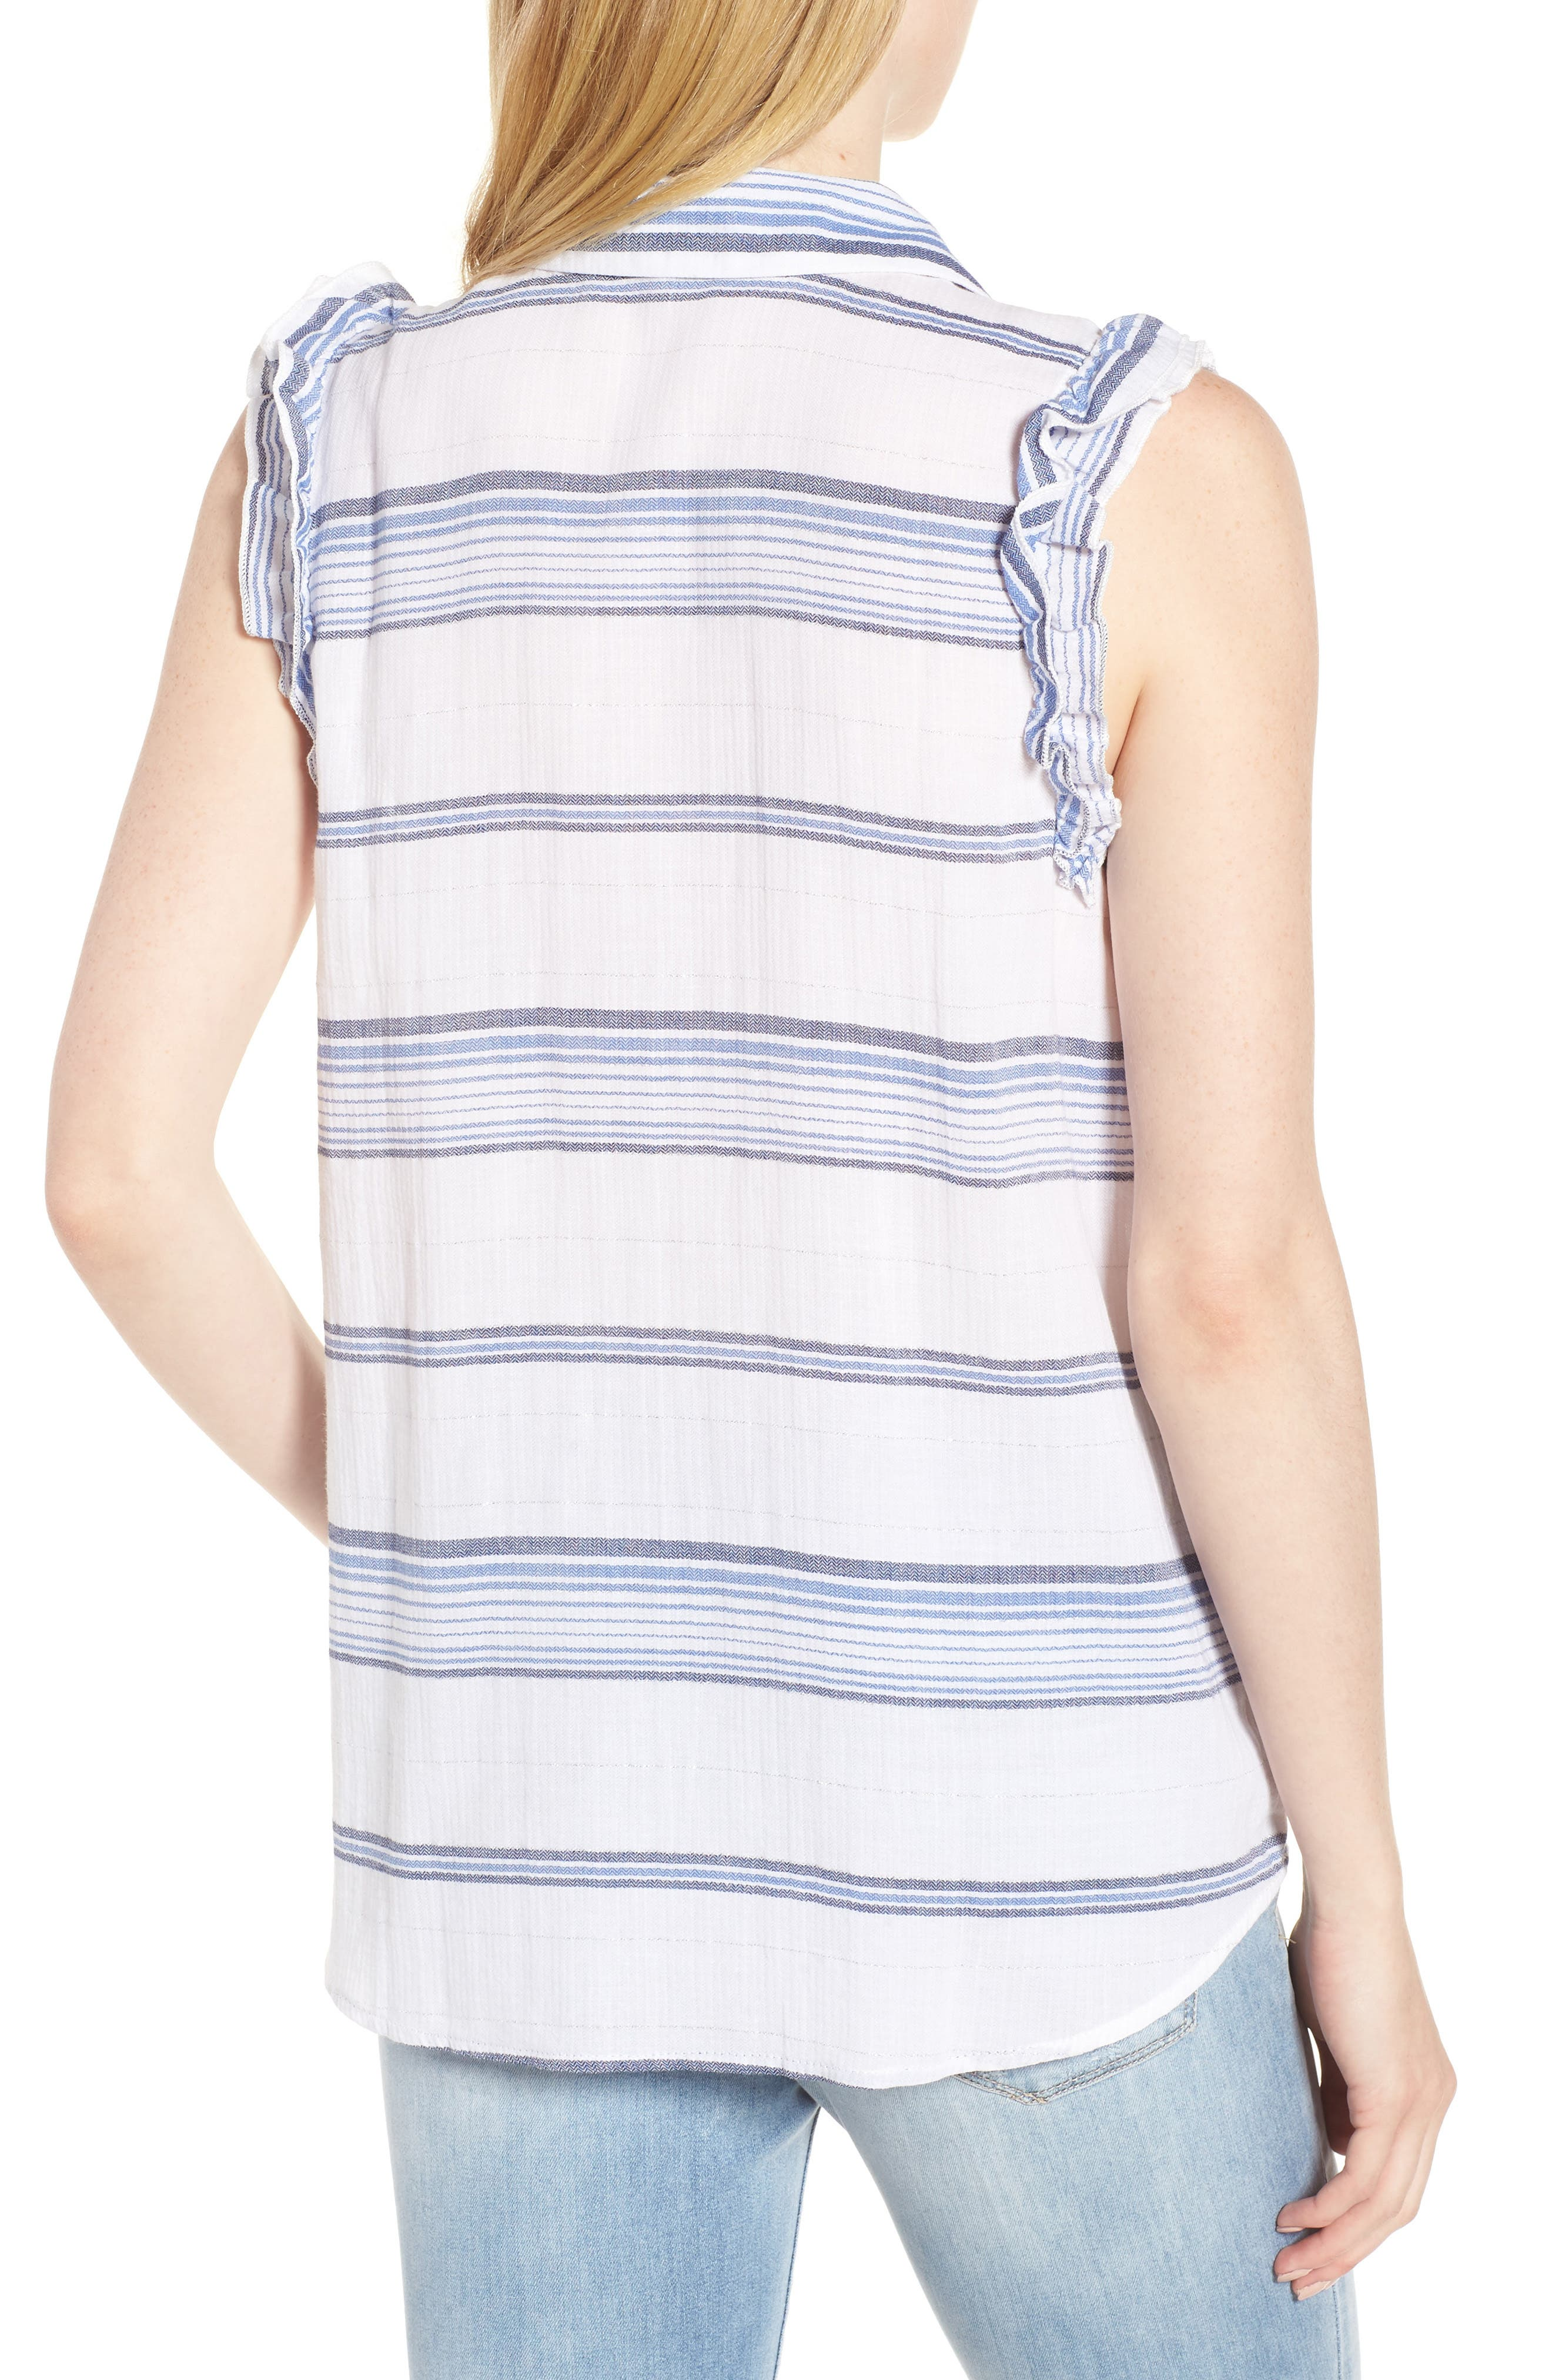 Ruffled Sleeve Striped Top,                             Alternate thumbnail 2, color,                             Blue/ White